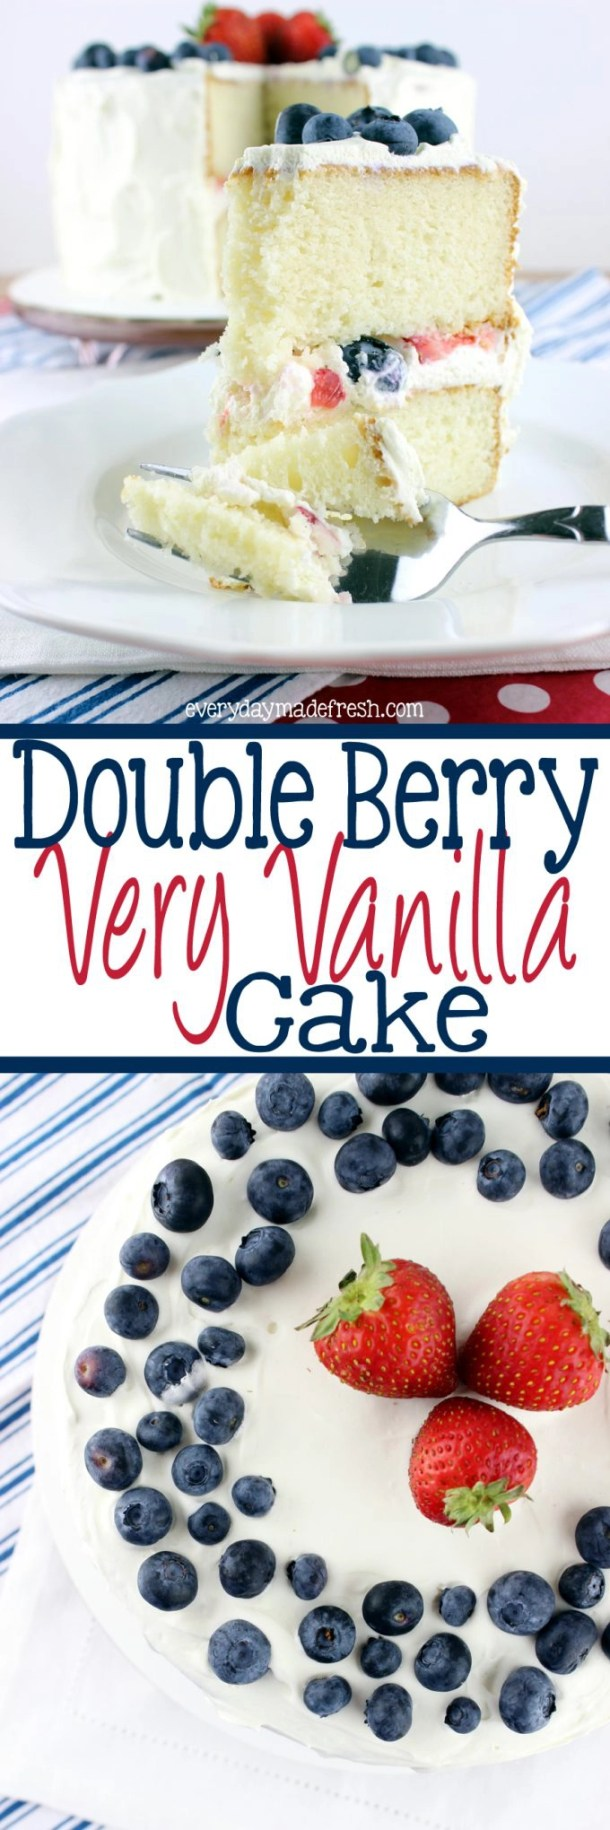 Nothing says summer time like blue berries and strawberries...And nothing says summer like a red, white, and blue dessert. This Double Berry Very Vanilla Cake is all of that! It's made light with the perfect whipped cream cheese topping.  | EverydayMadeFresh.com